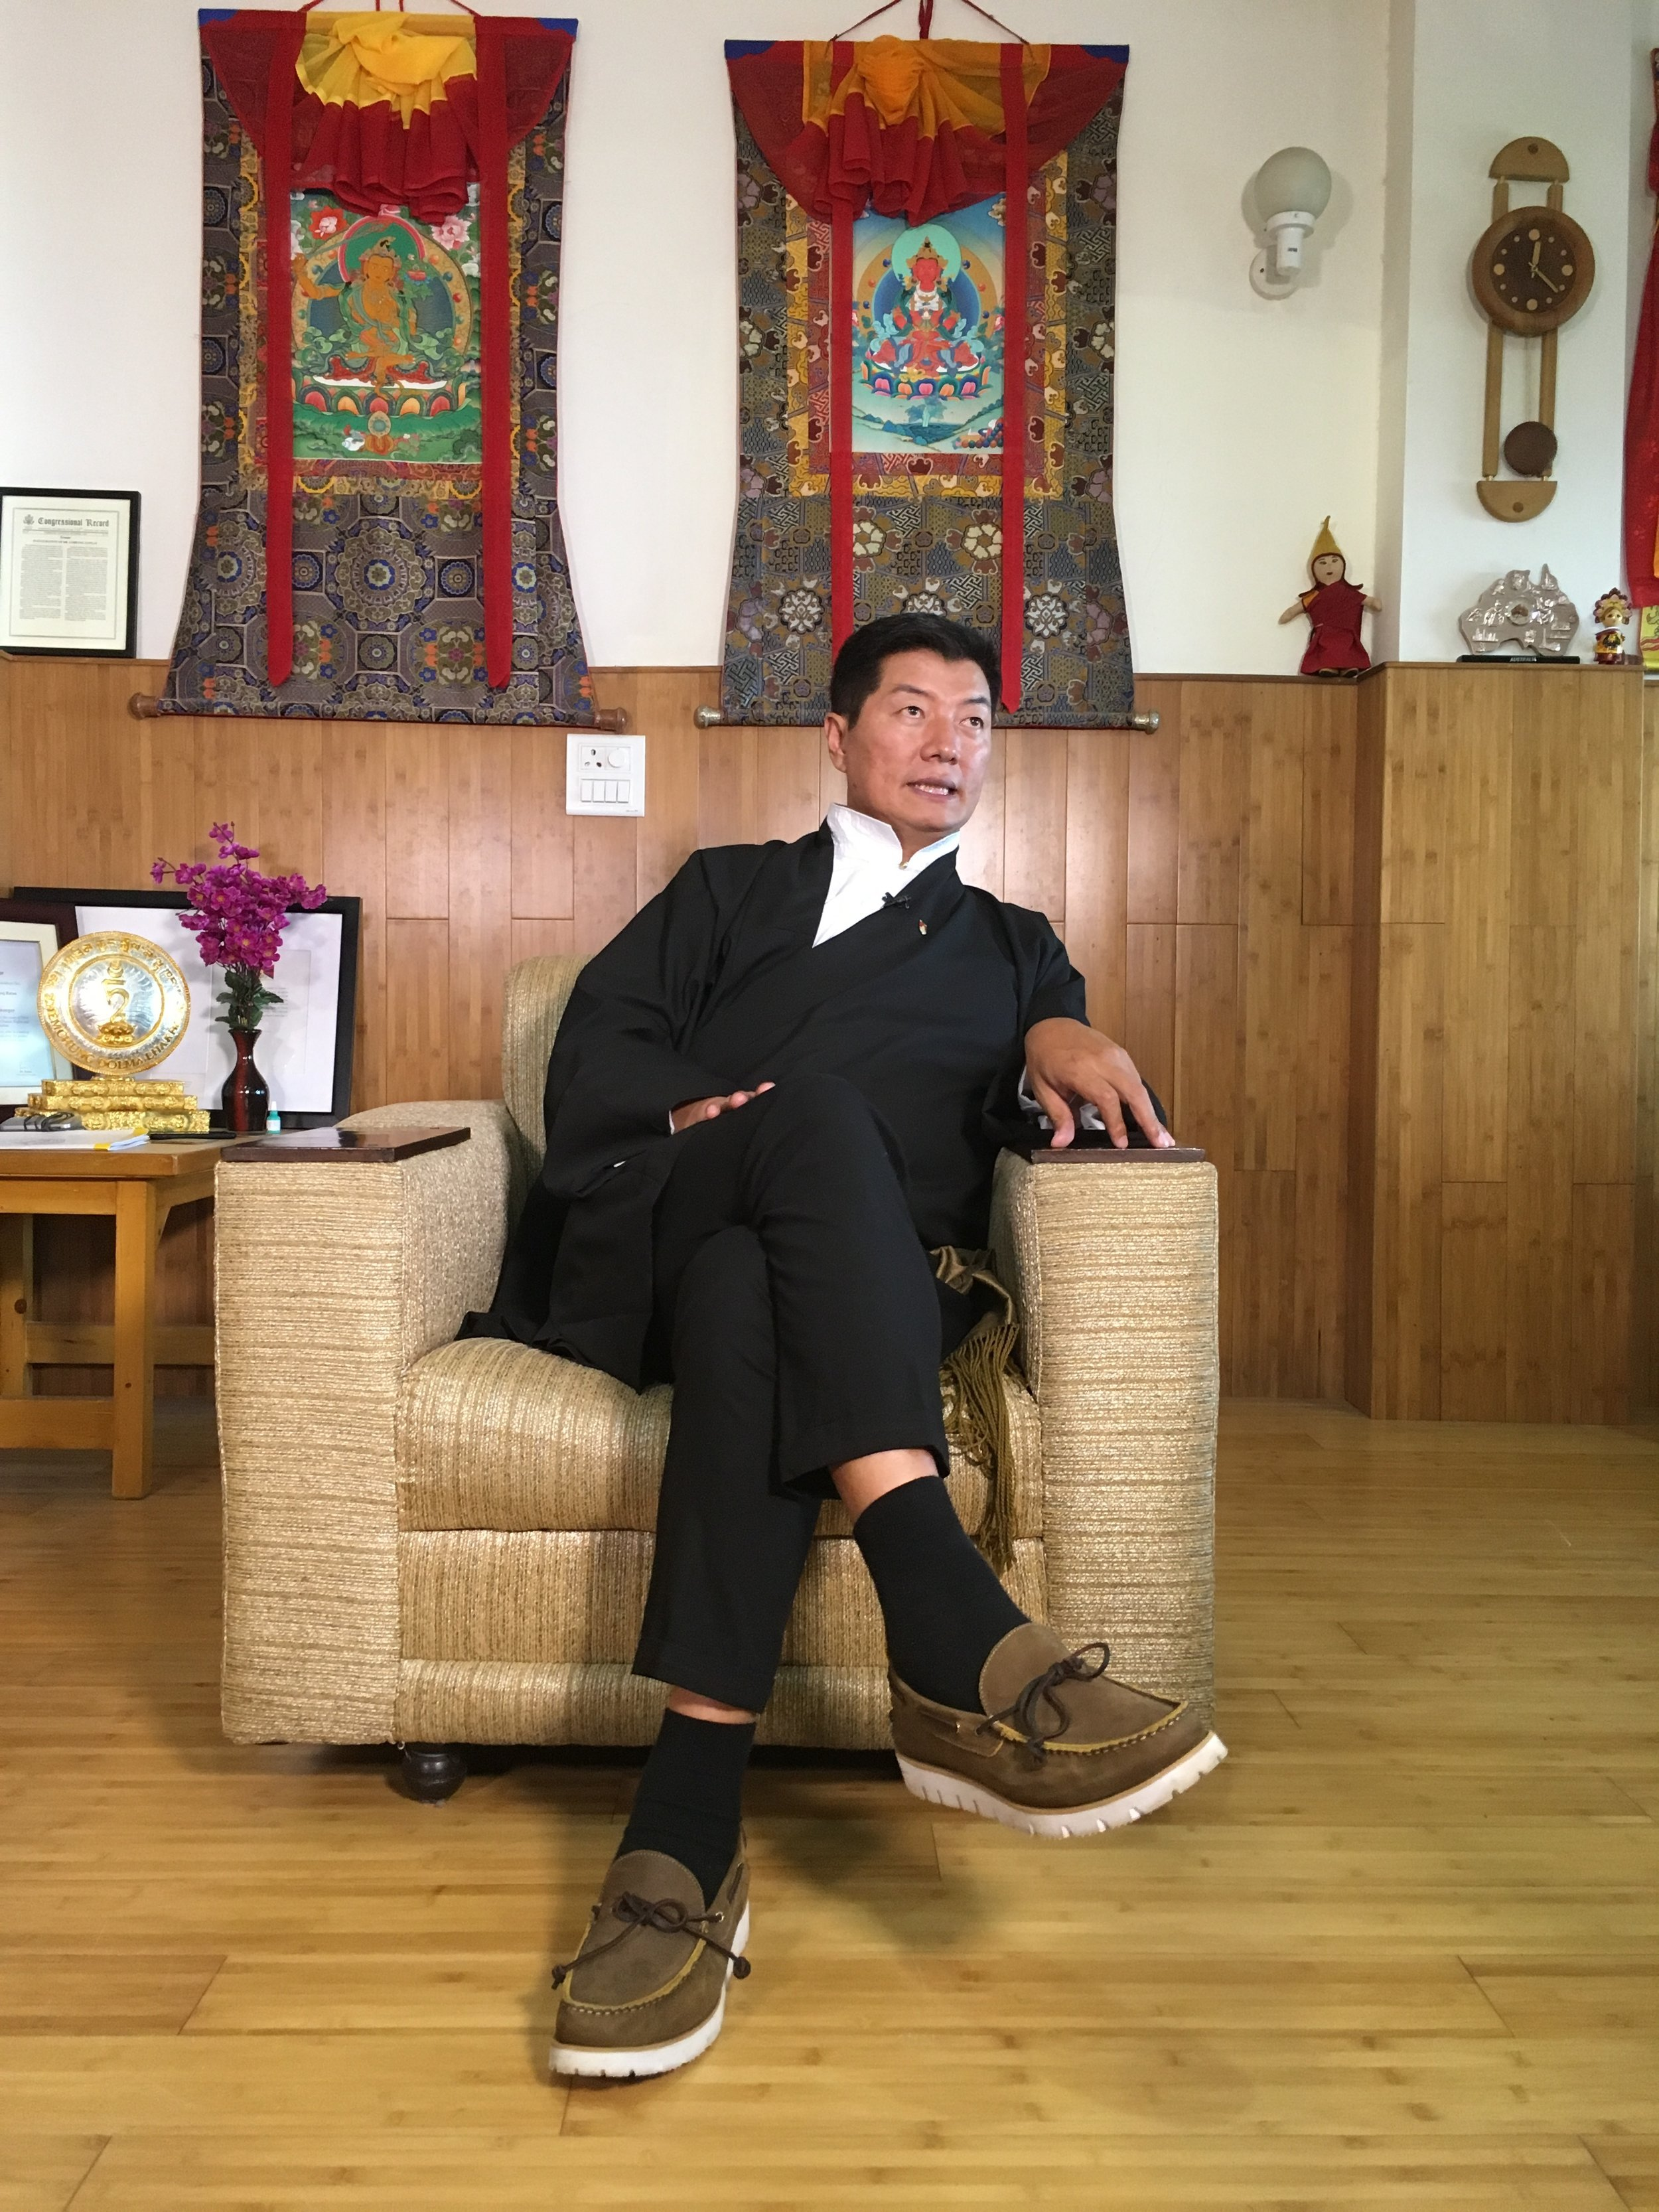 Dr. Lobsang Sangay, the president of the Tibetan exile government, speaks from his office in Dharamsala, India in October 2018